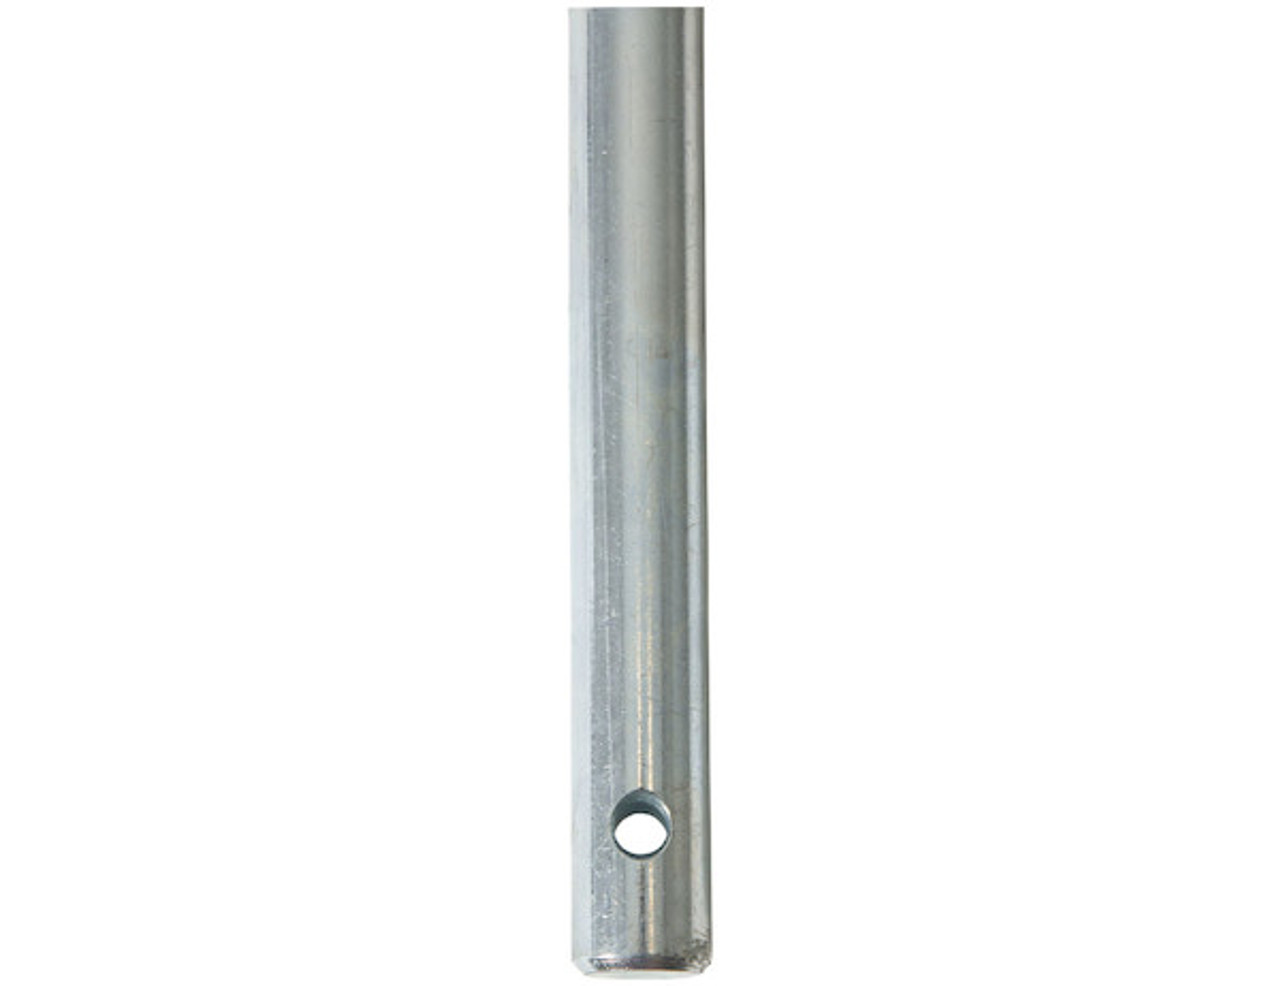 BUYERS 142X150 Replacement 35 Inch Extended Chute Zinc Spinner Shaft For SaltDogg 1400 Series Spreaders 4